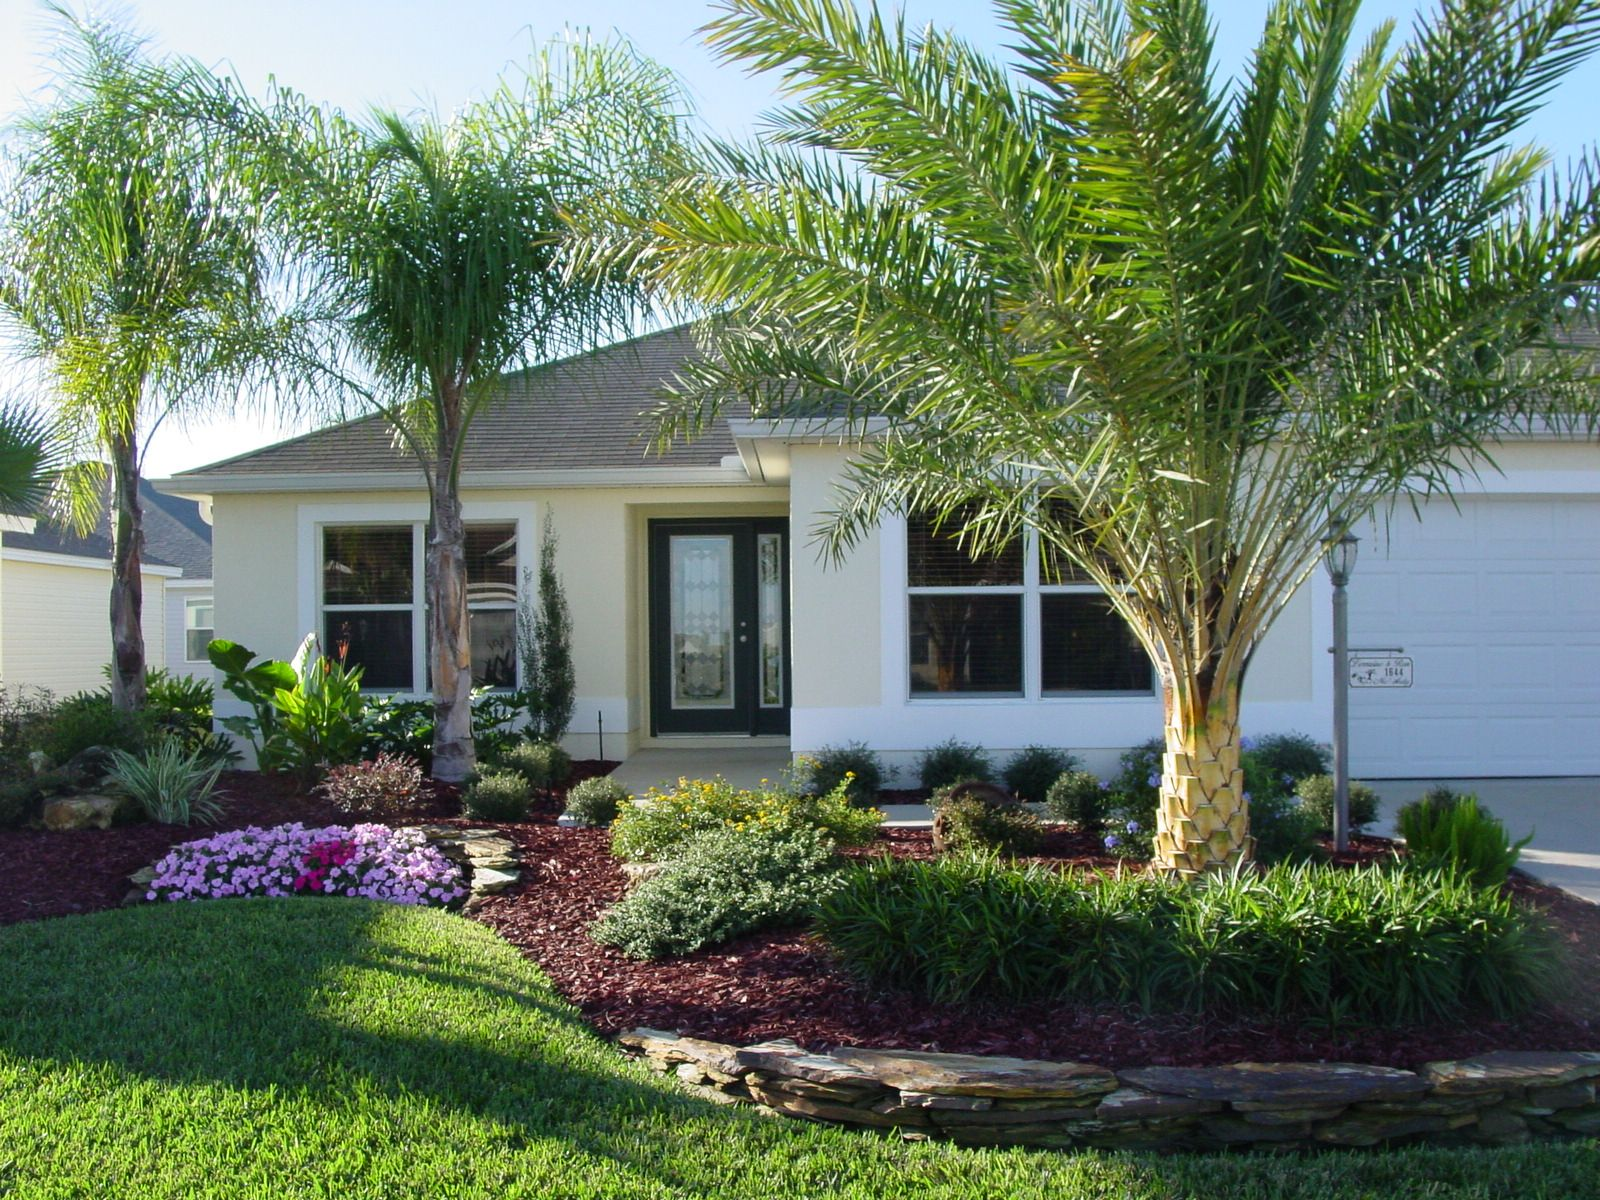 Home Landscaping Ideas florida landscaping ideas | rons landscaping inc » about us